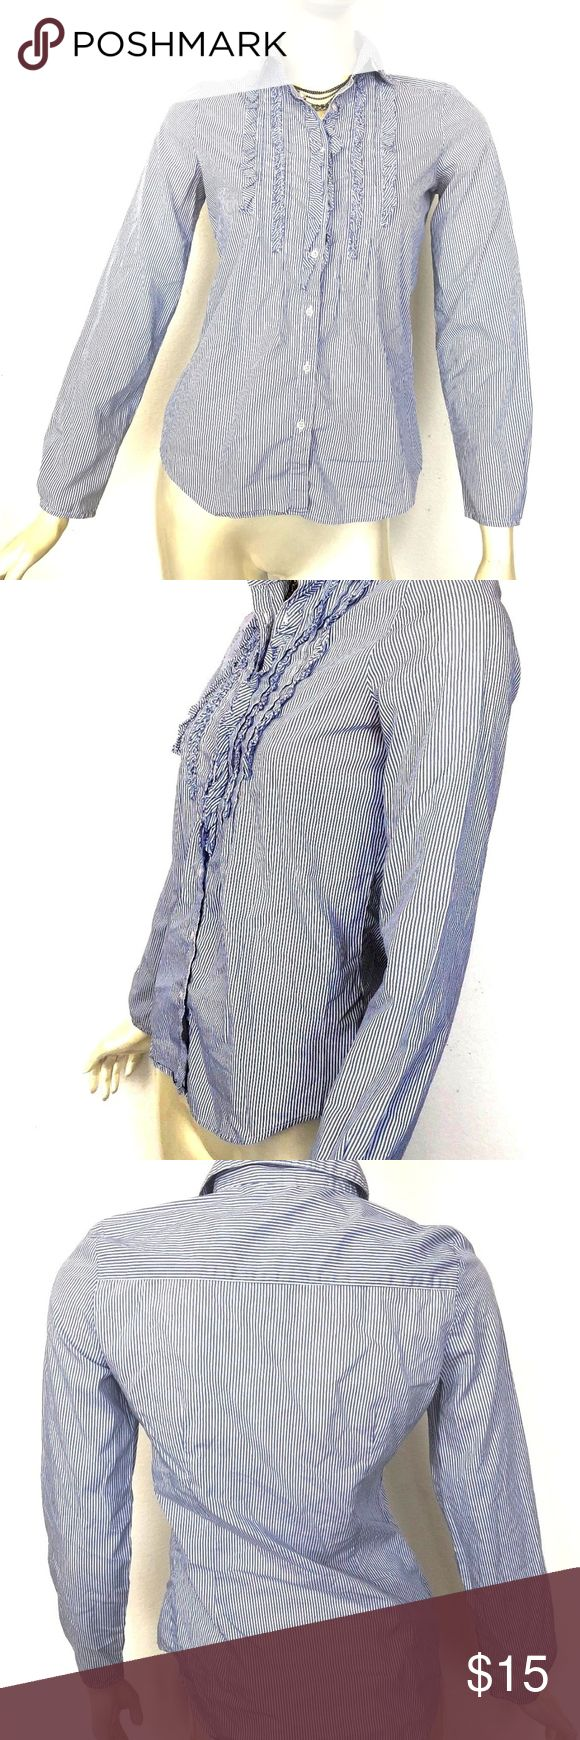 """ZARA Basic Blue White Striped Ruffle Button Down S ZARA Basic Blue White Striped Ruffle Button Down Long Sleeve S Women's top shirt  Measurements taken while laying flat: Length:25"""" Armpit to armpit:18""""  **ANY ACCESSORIES USED ON MANNEQUIN ARE NOT INCLUDED** Zara Tops Button Down Shirts"""